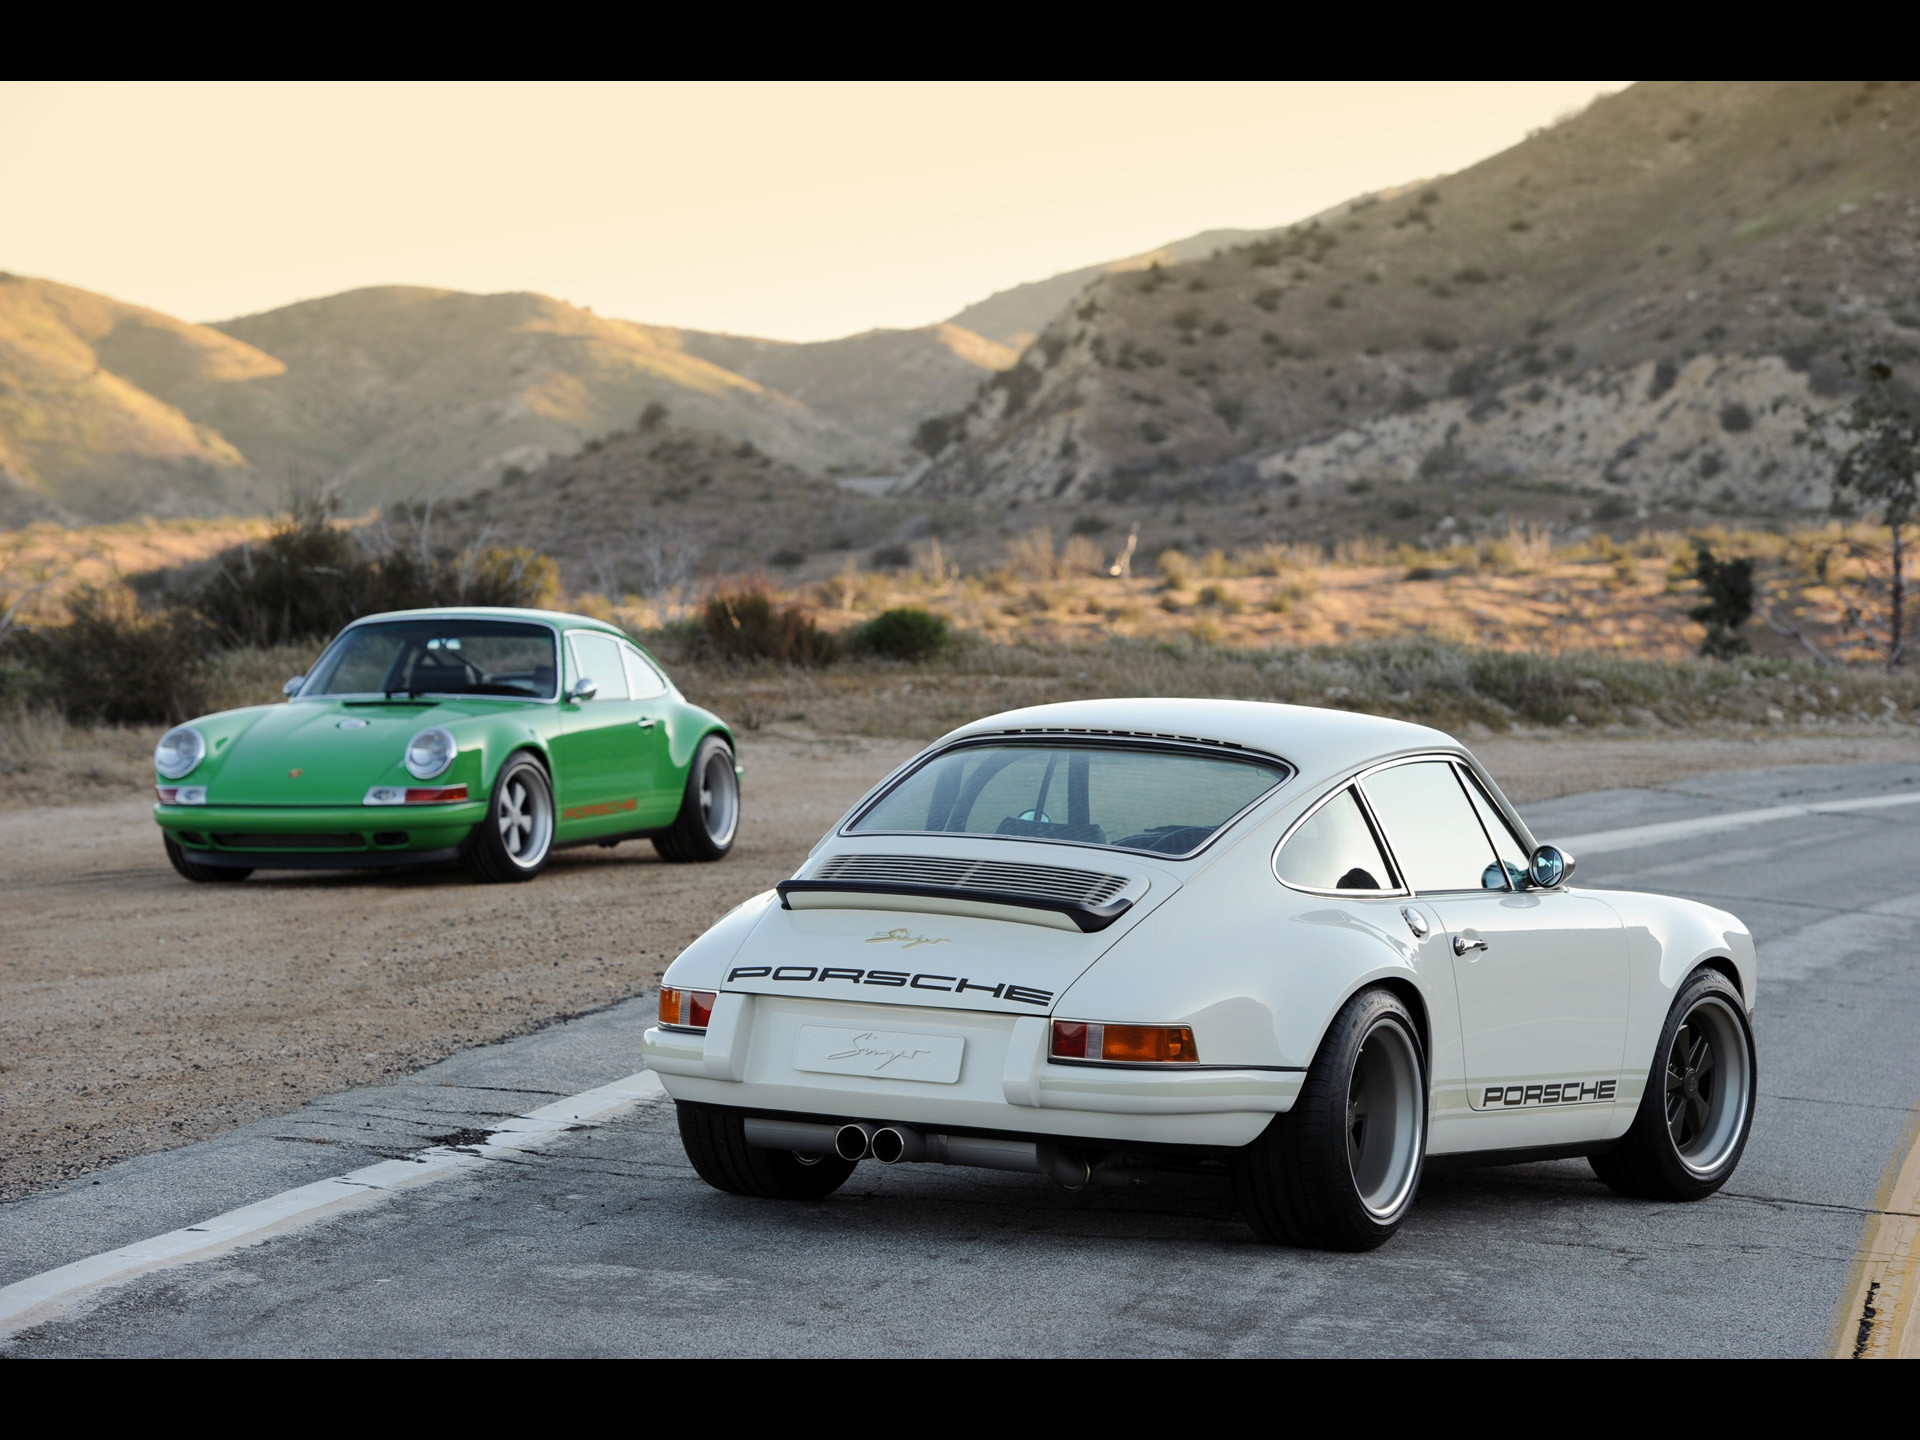 1920x1440 Singer Porsche 911 White Duo - Cars Wallpapers | Best HD Wallpapers .